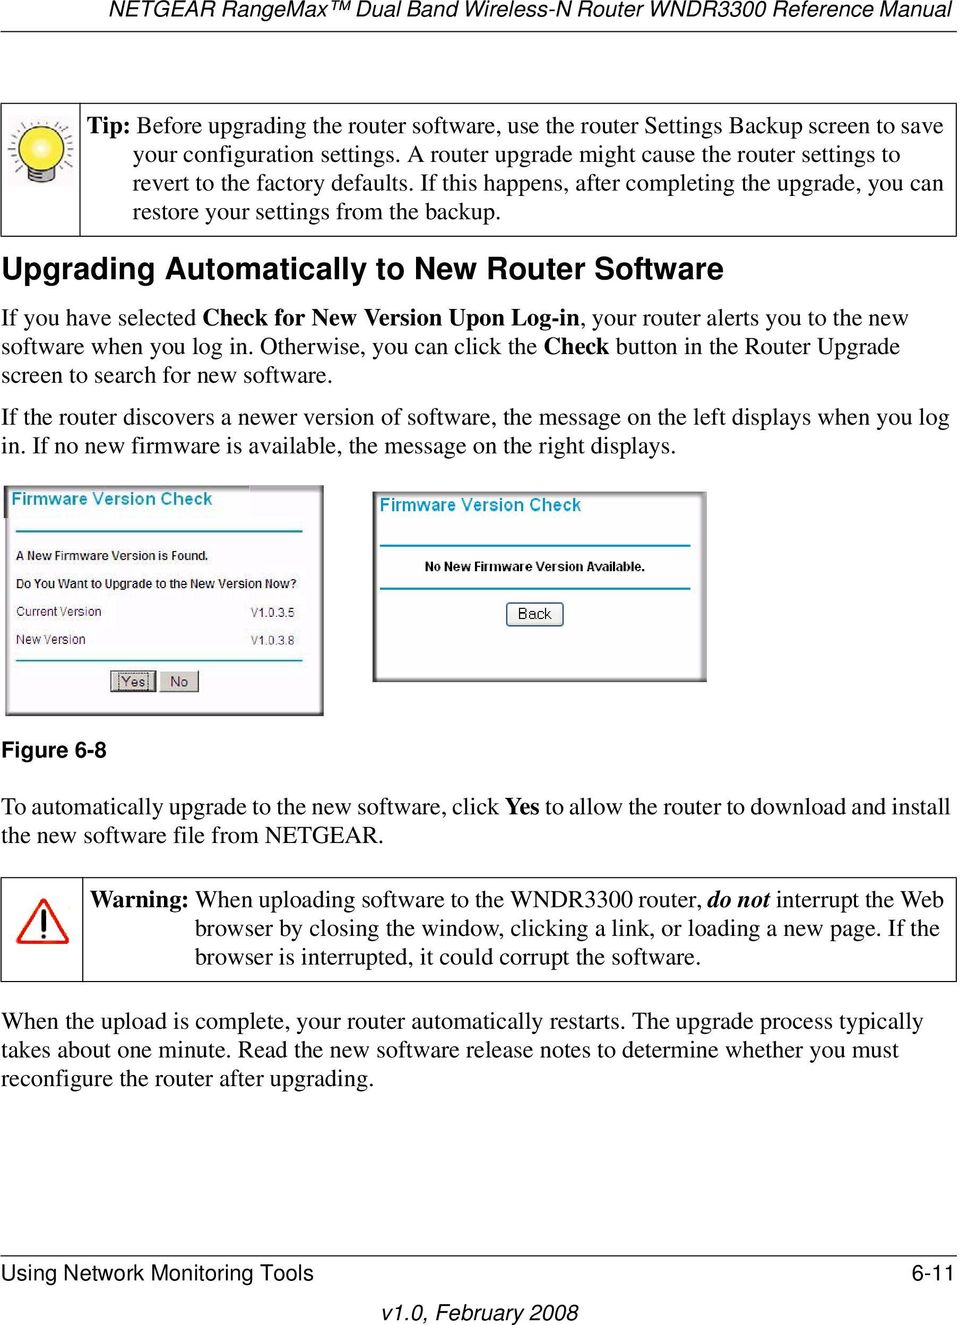 Upgrading Automatically to New Router Software If you have selected Check for New Version Upon Log-in, your router alerts you to the new software when you log in.